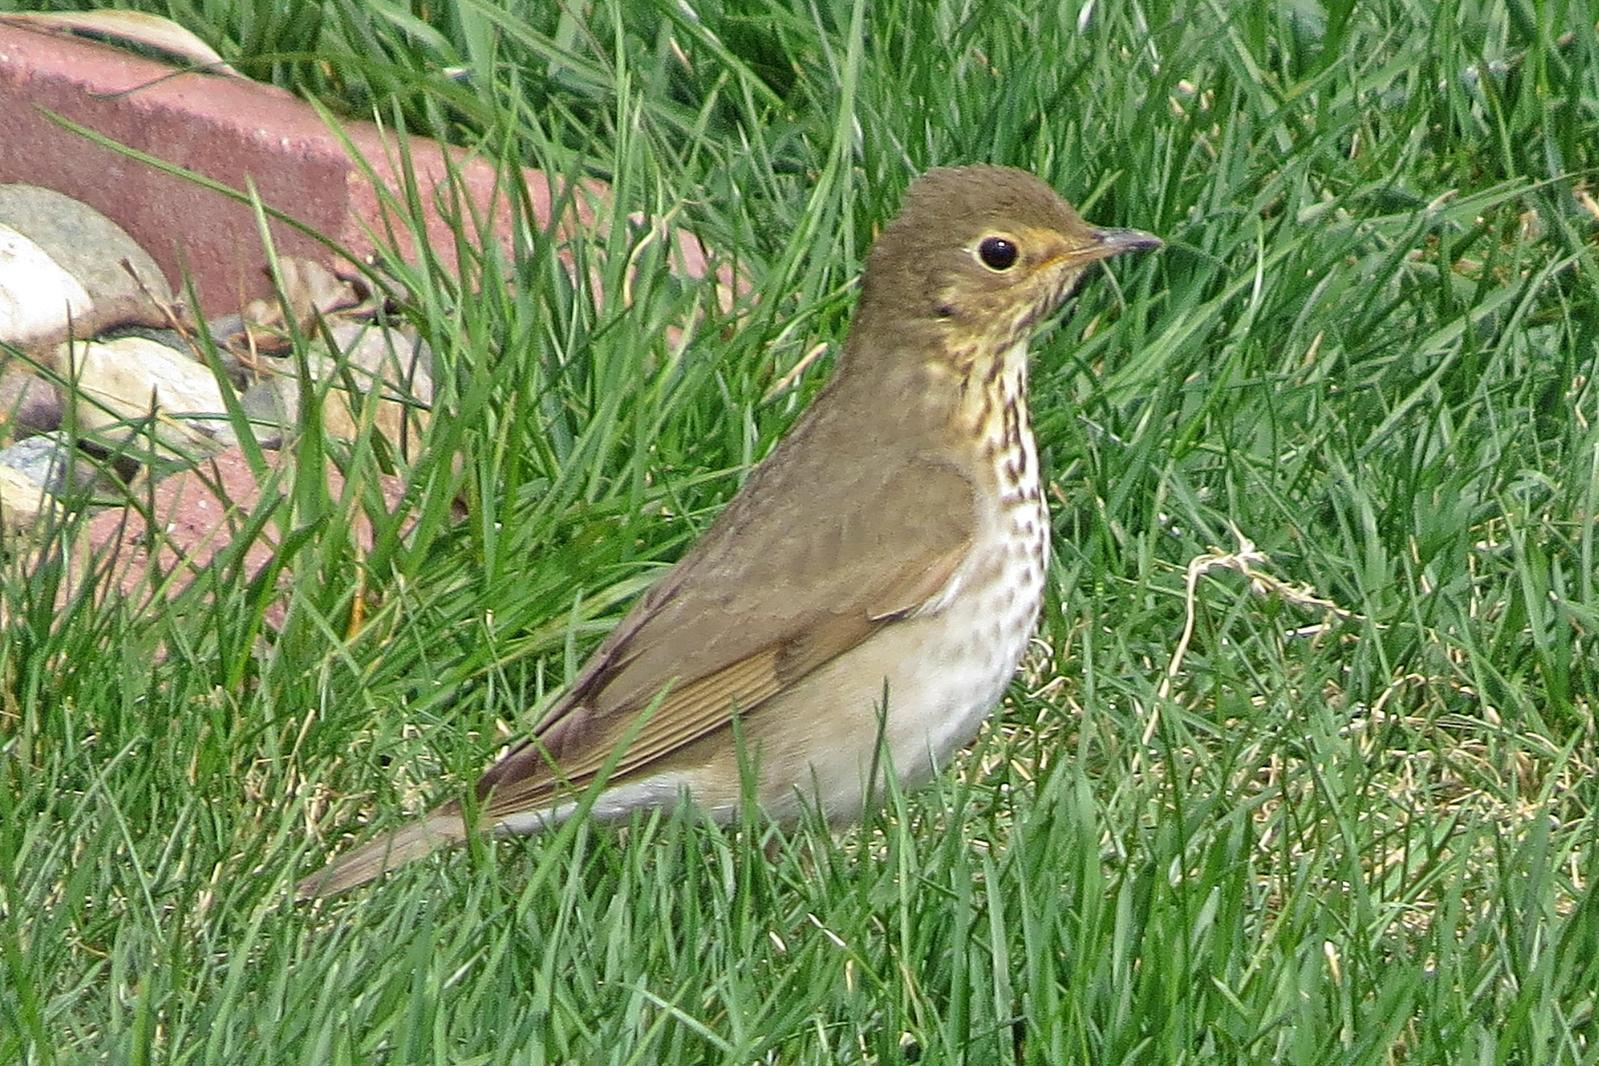 Swainson's Thrush Photo by Enid Bachman